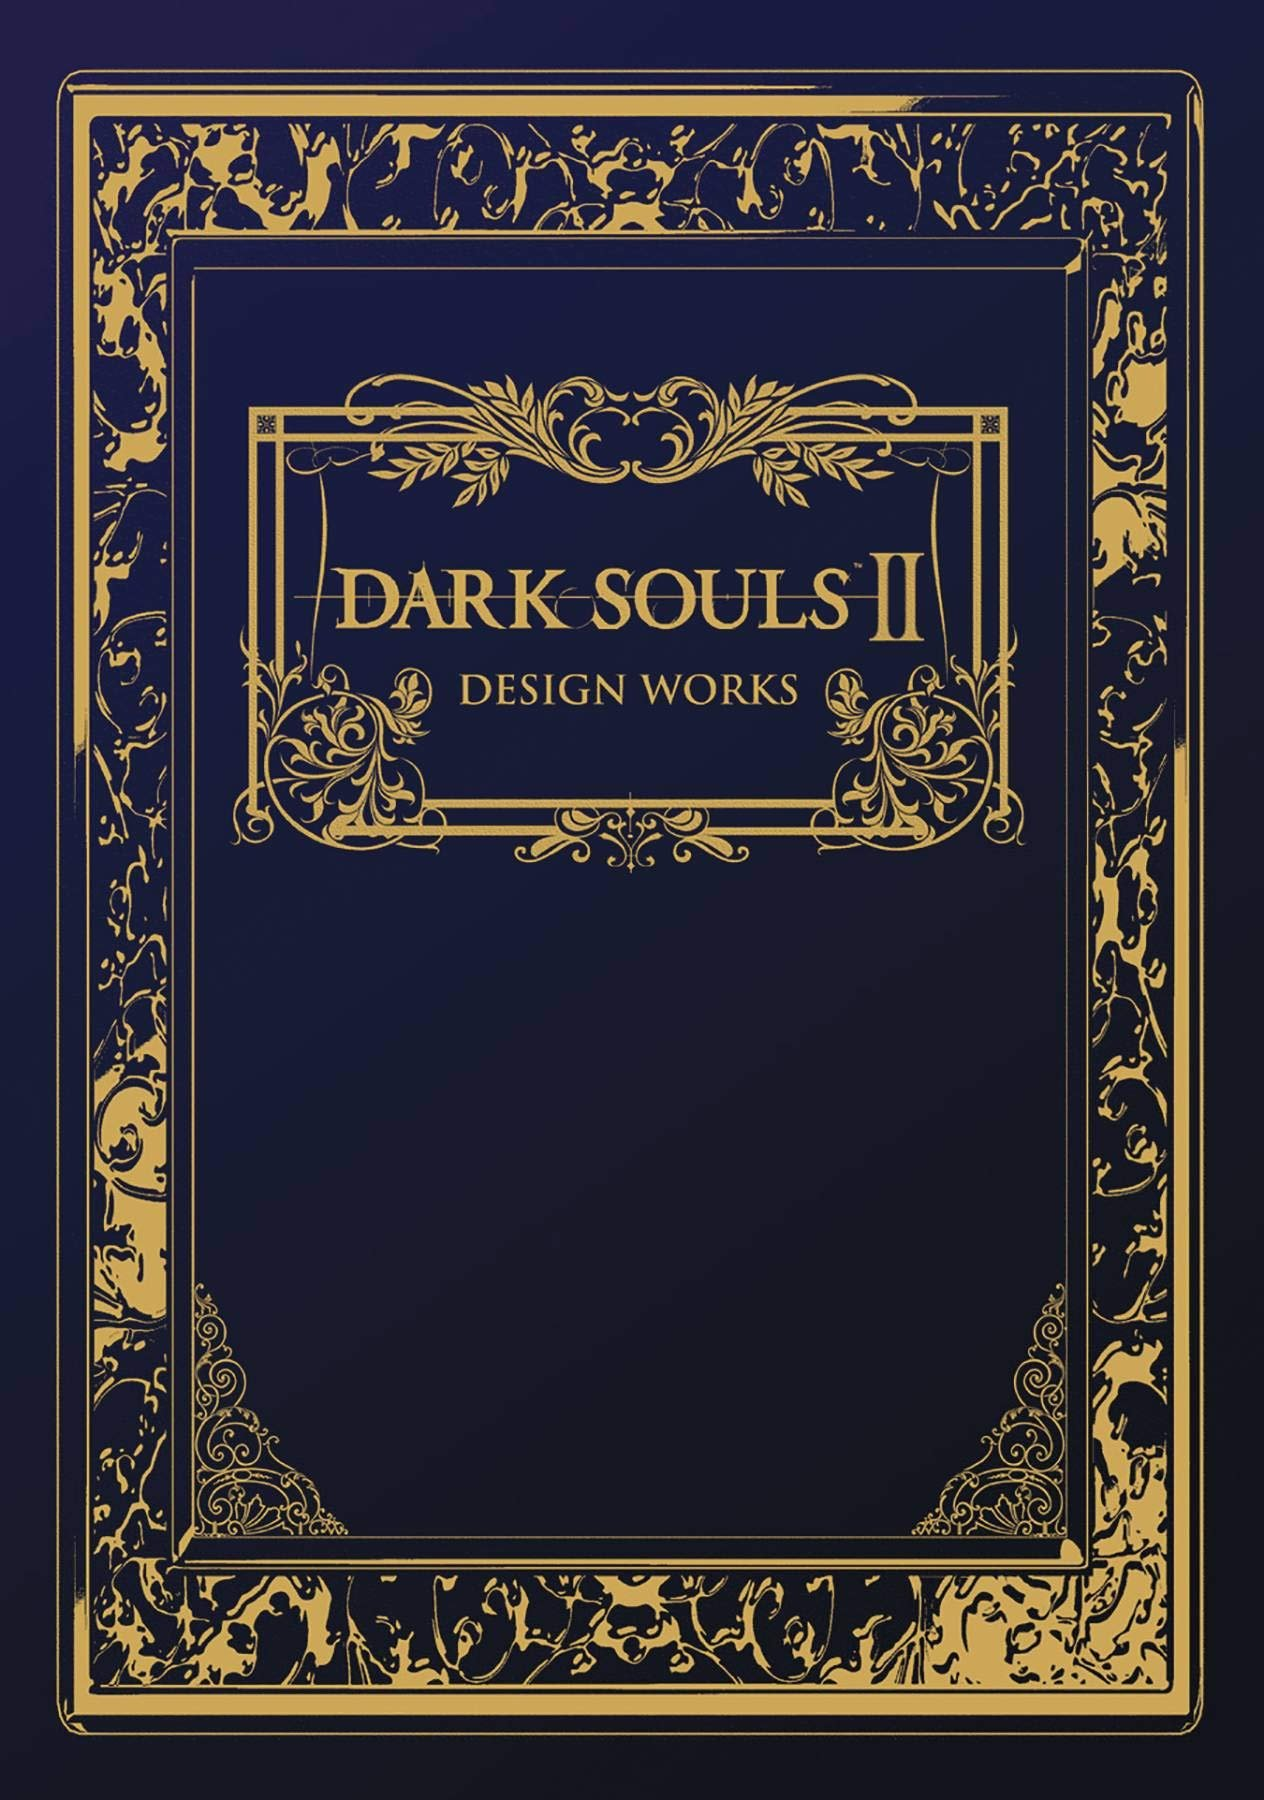 Dark Souls II - Design Works